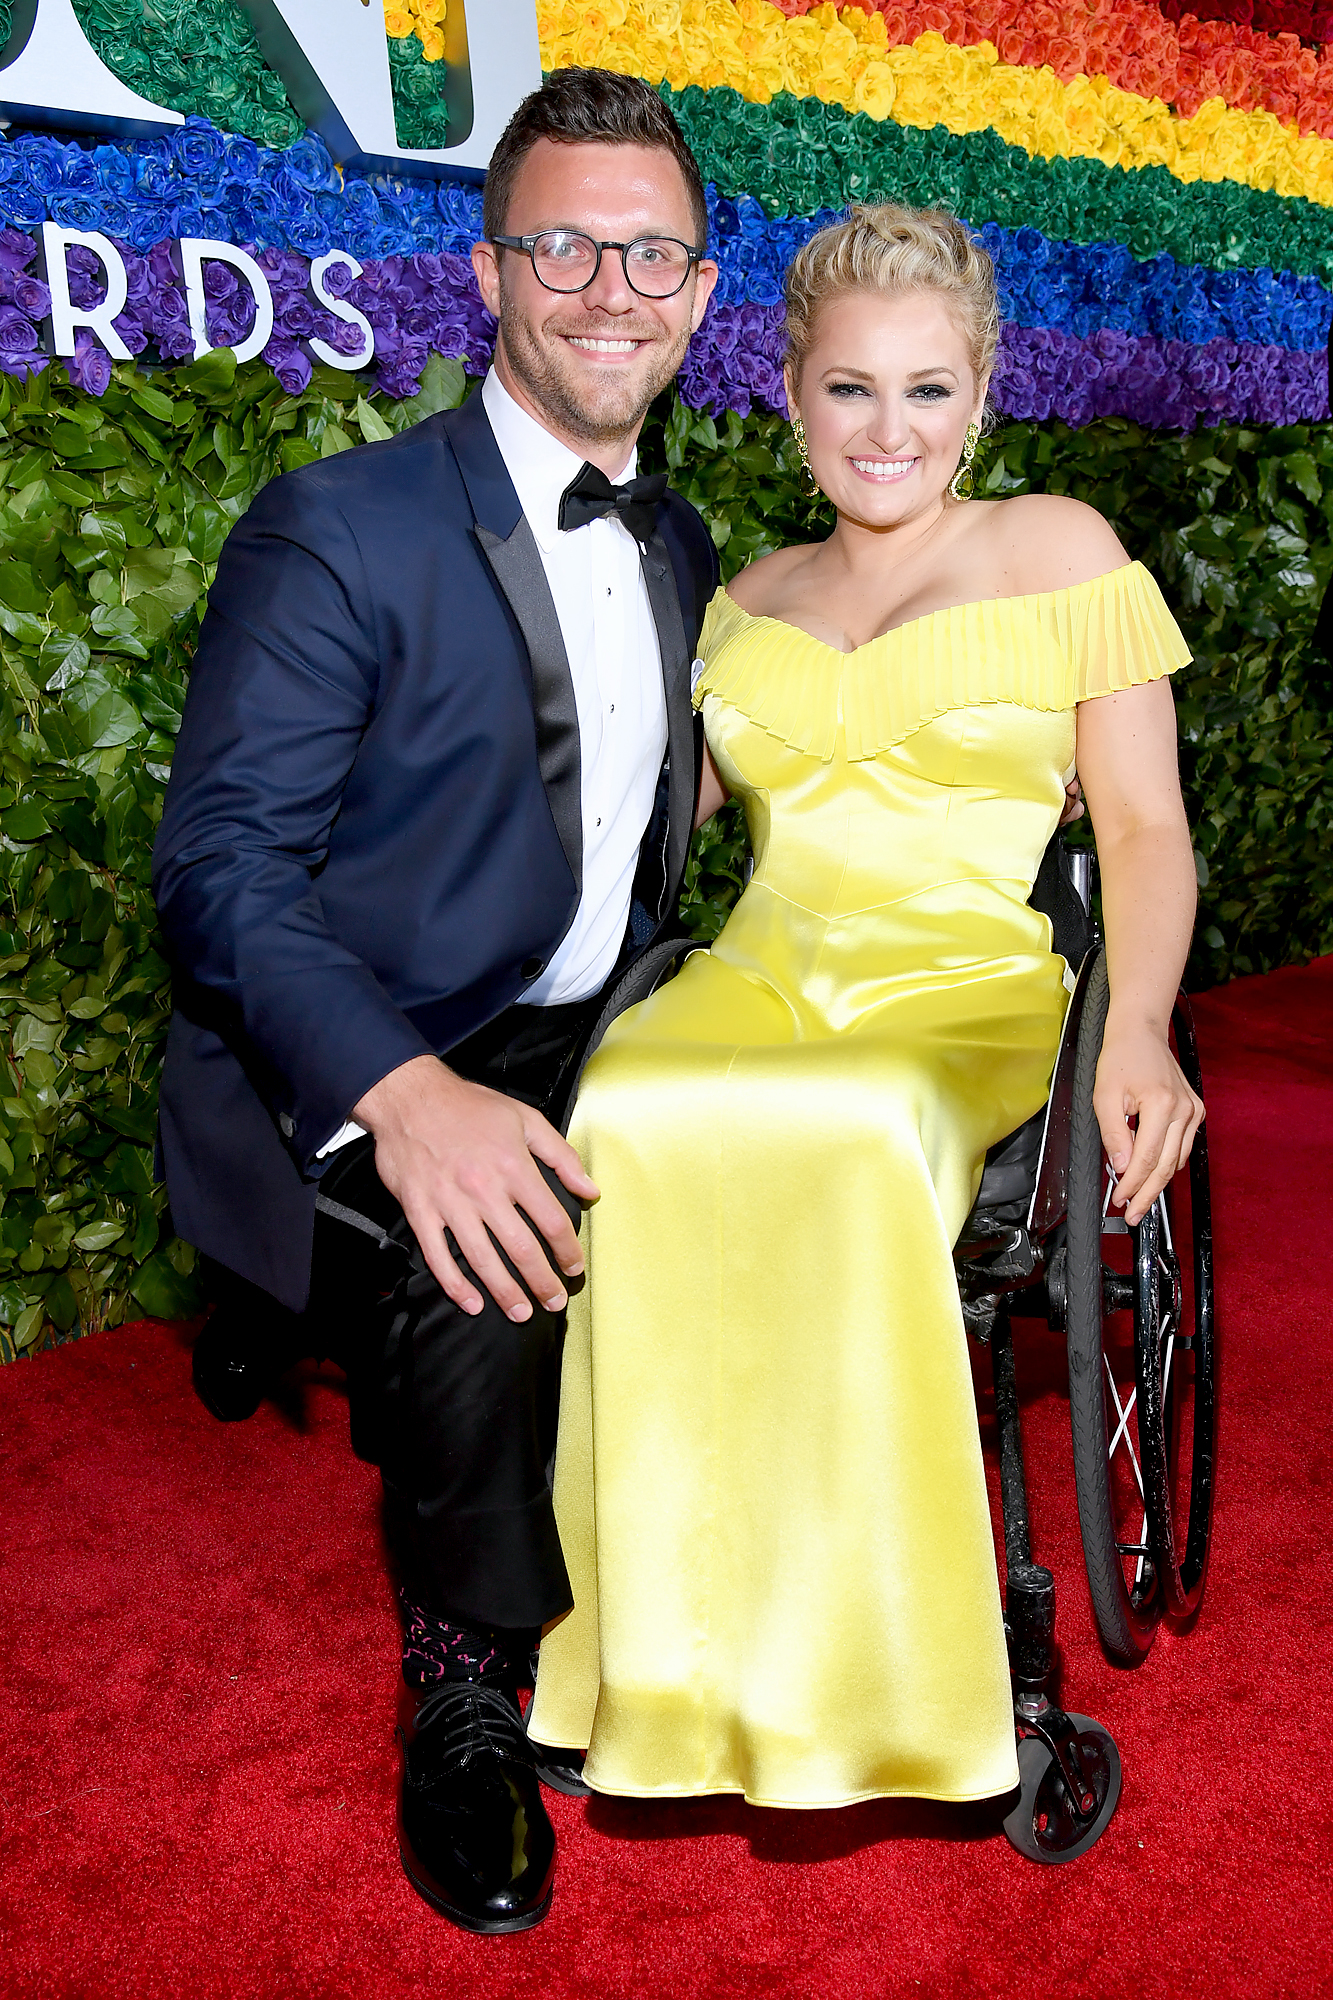 'Glee' Alum Ali Stroker Makes History at 2019 Tony Awards, 'Oklahoma!' Star Is First Actor in a Wheelchair to Win